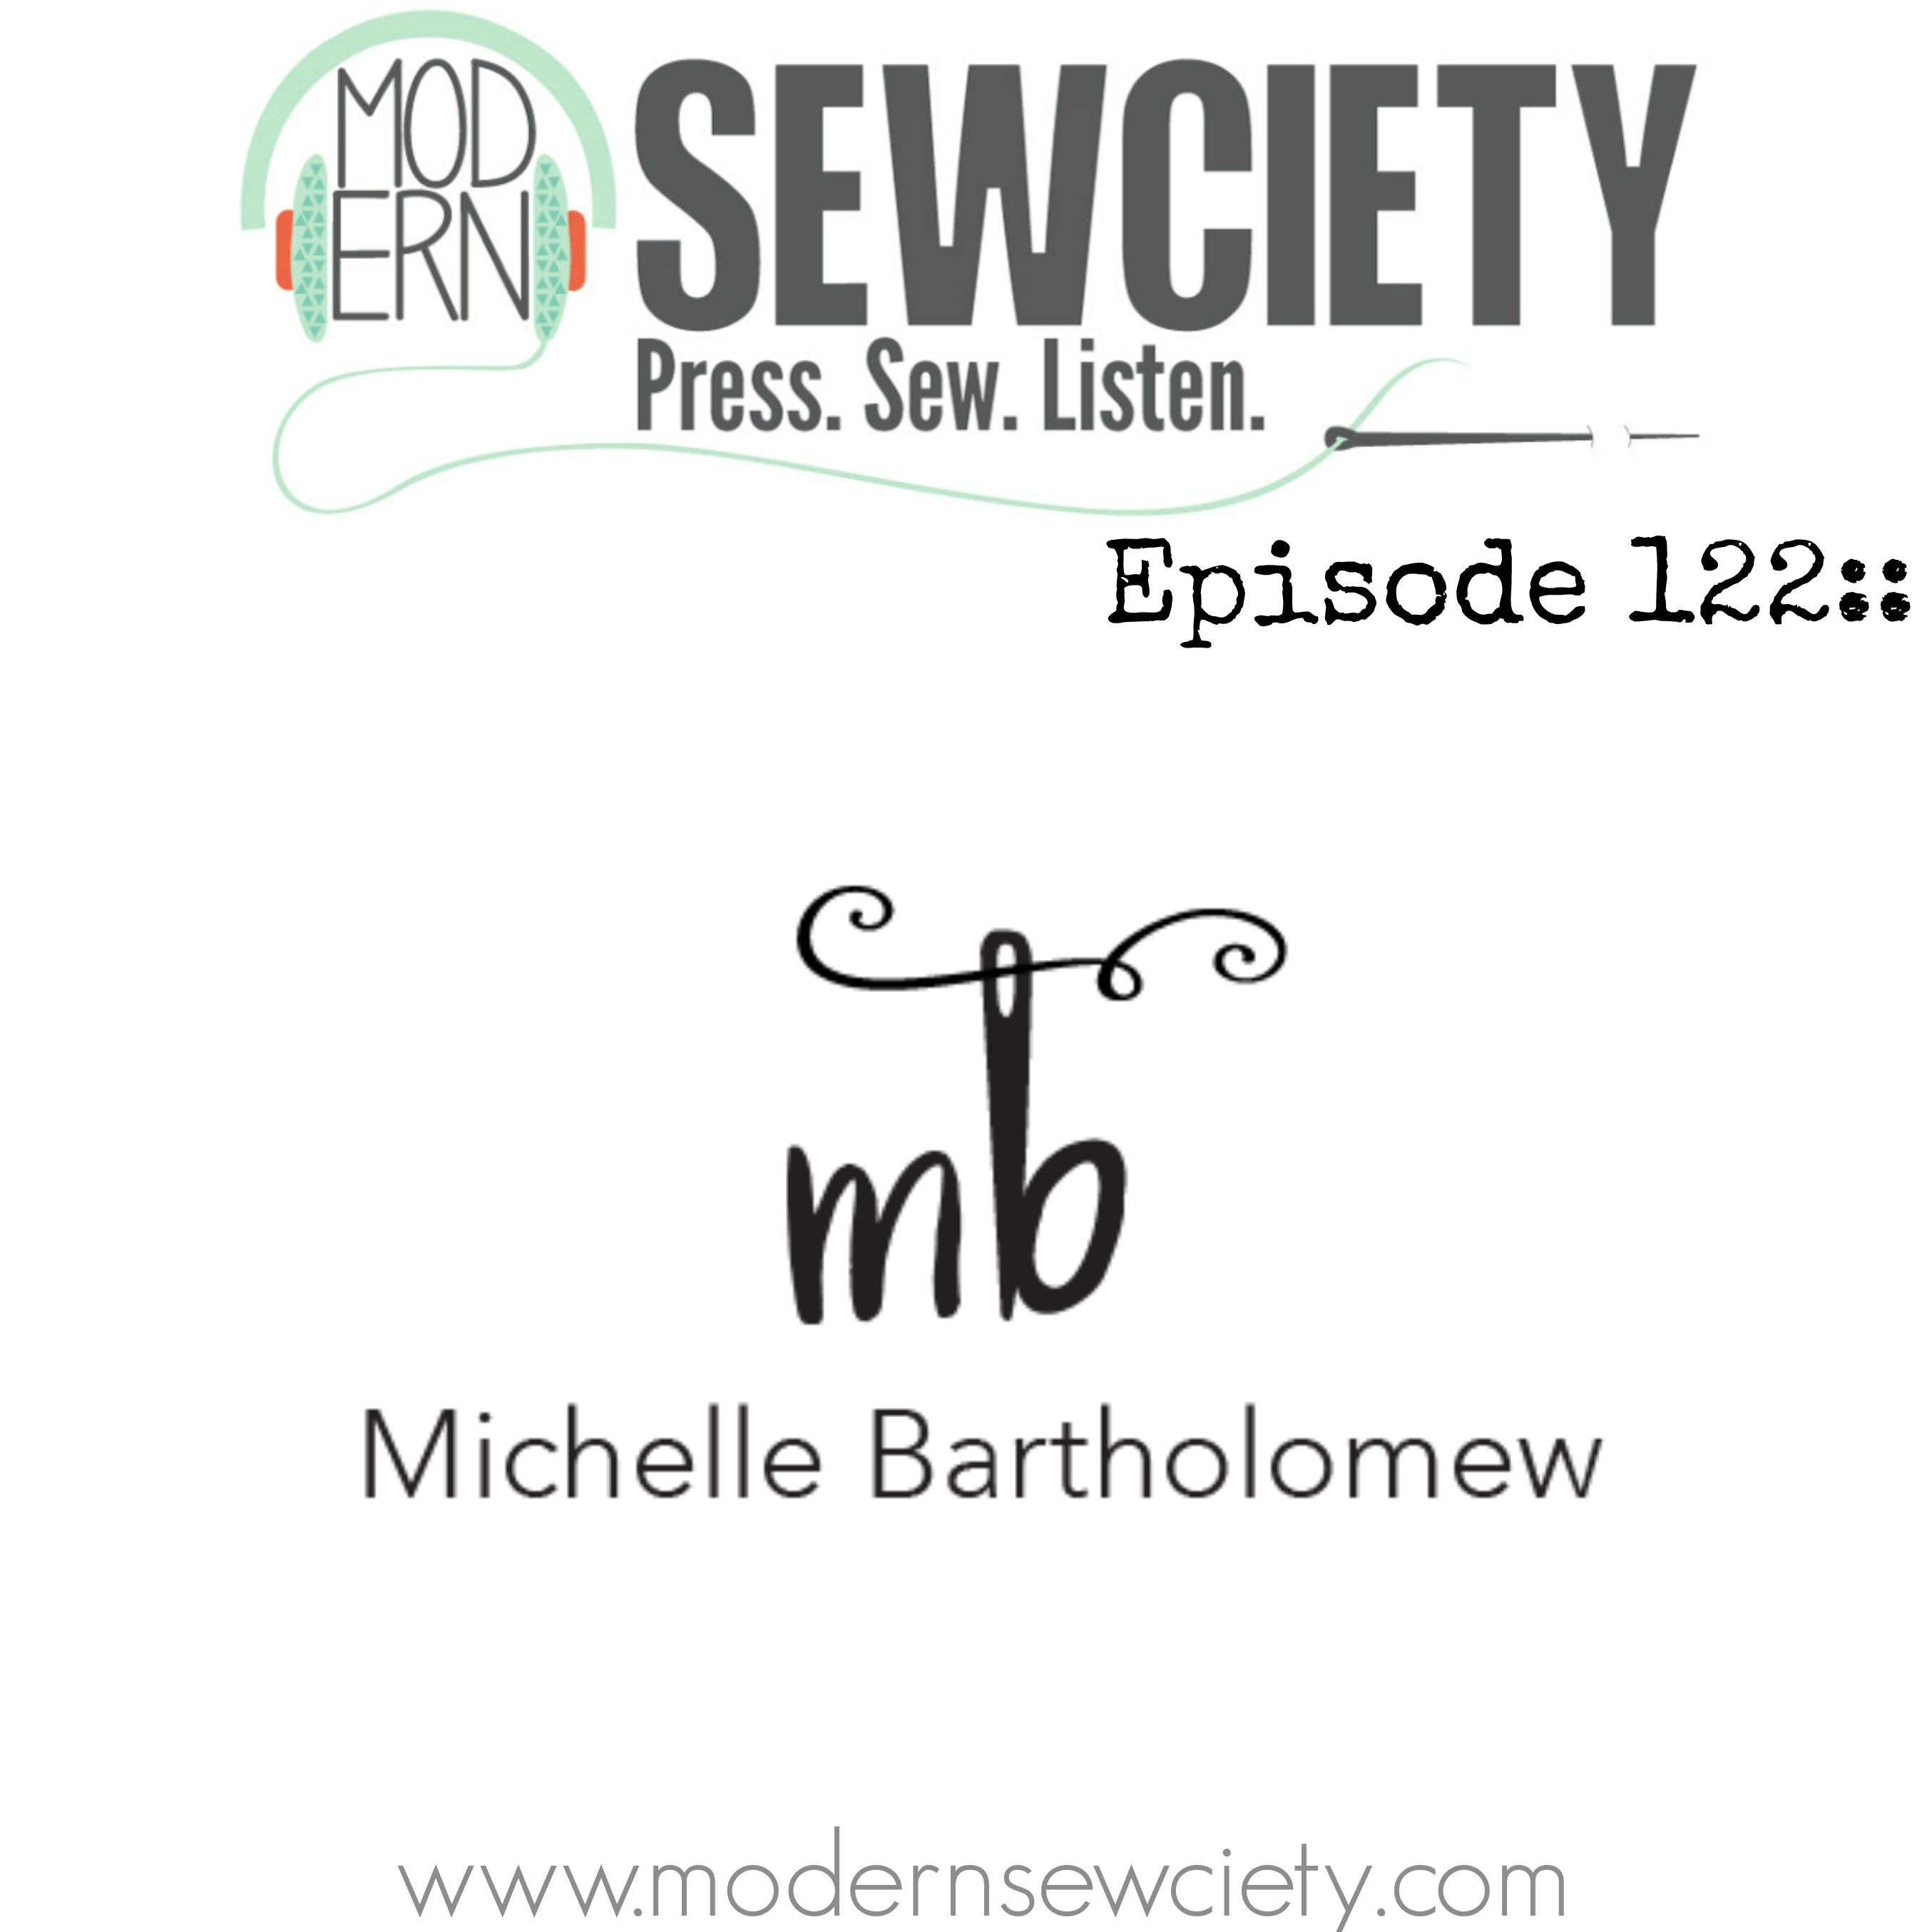 episode 122 art michelle bartholomew